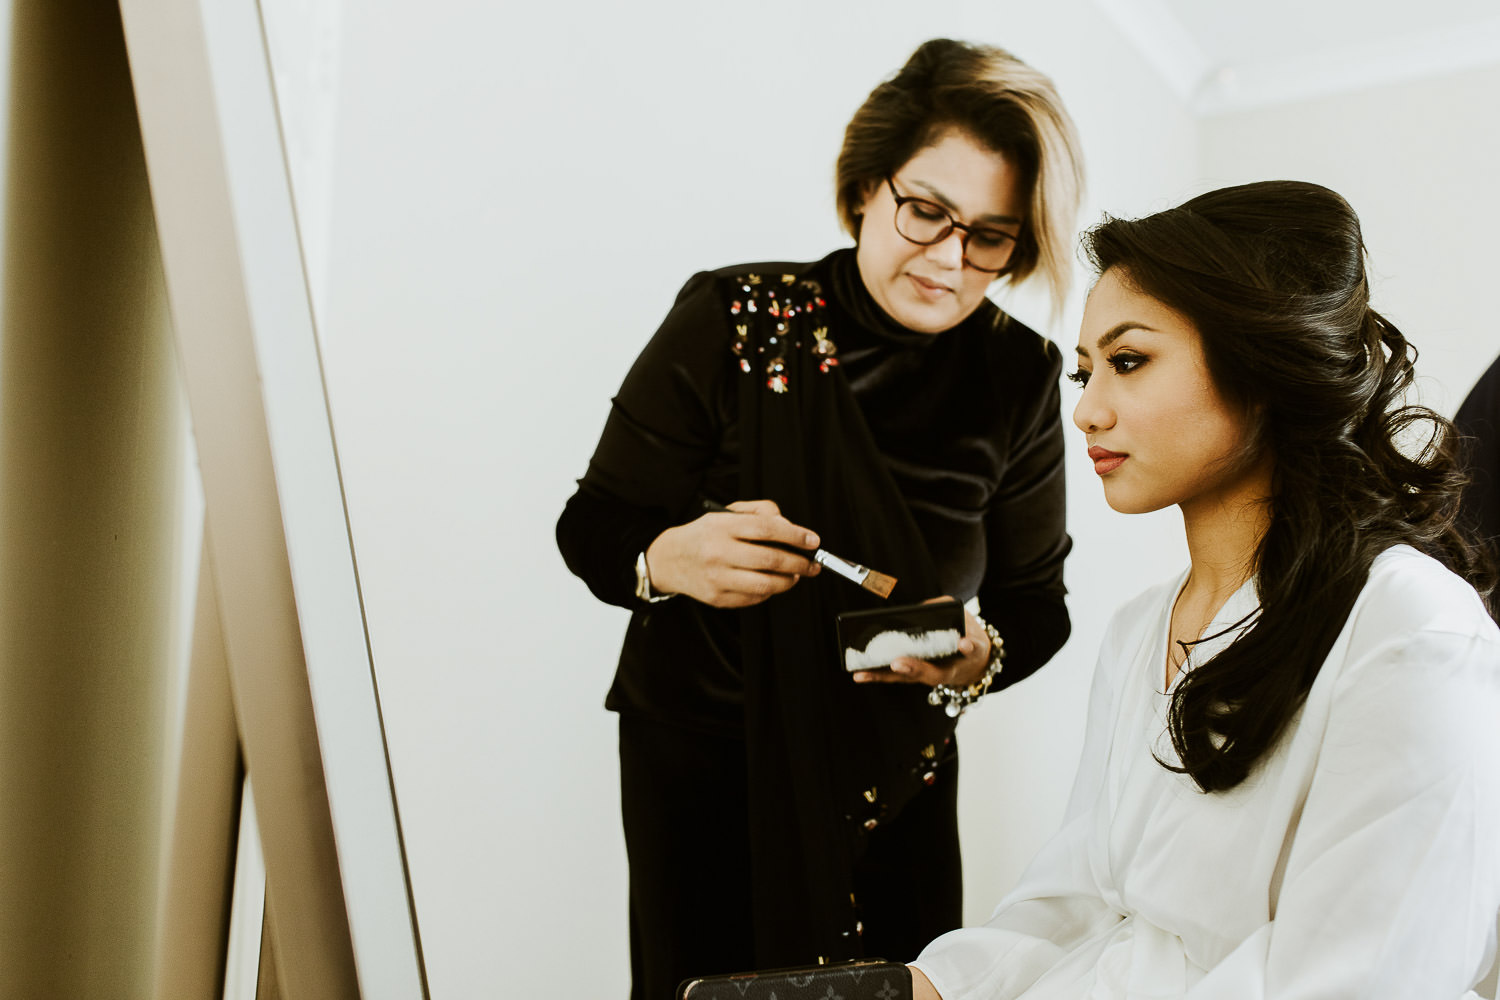 Fatimah Mohsin doing make up on the bride